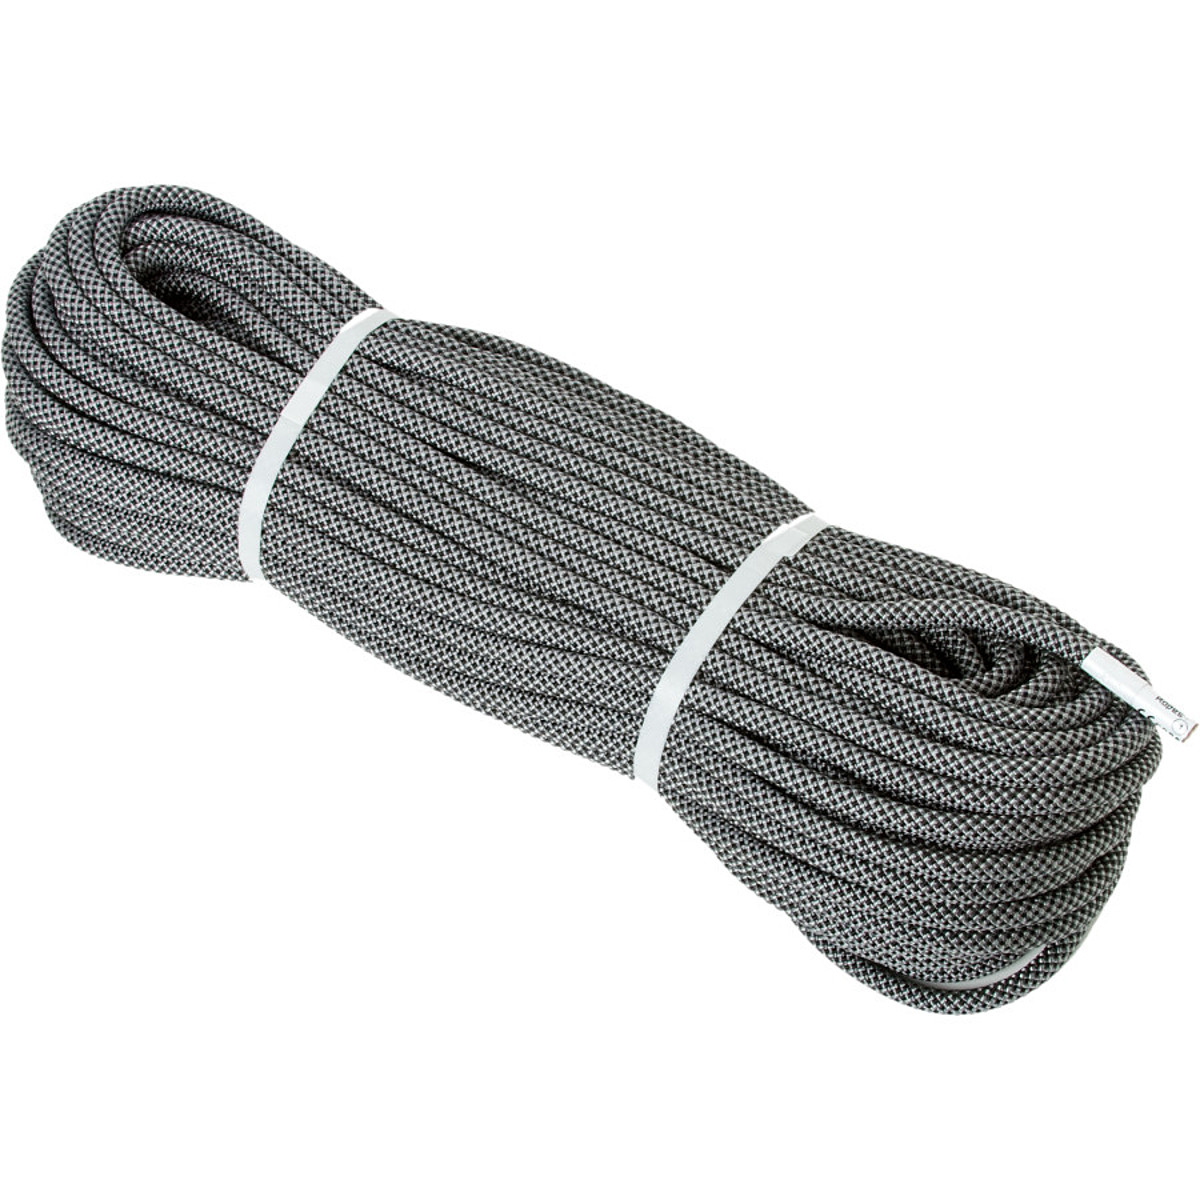 BlueWater Ropes 10.5mm Accelerator